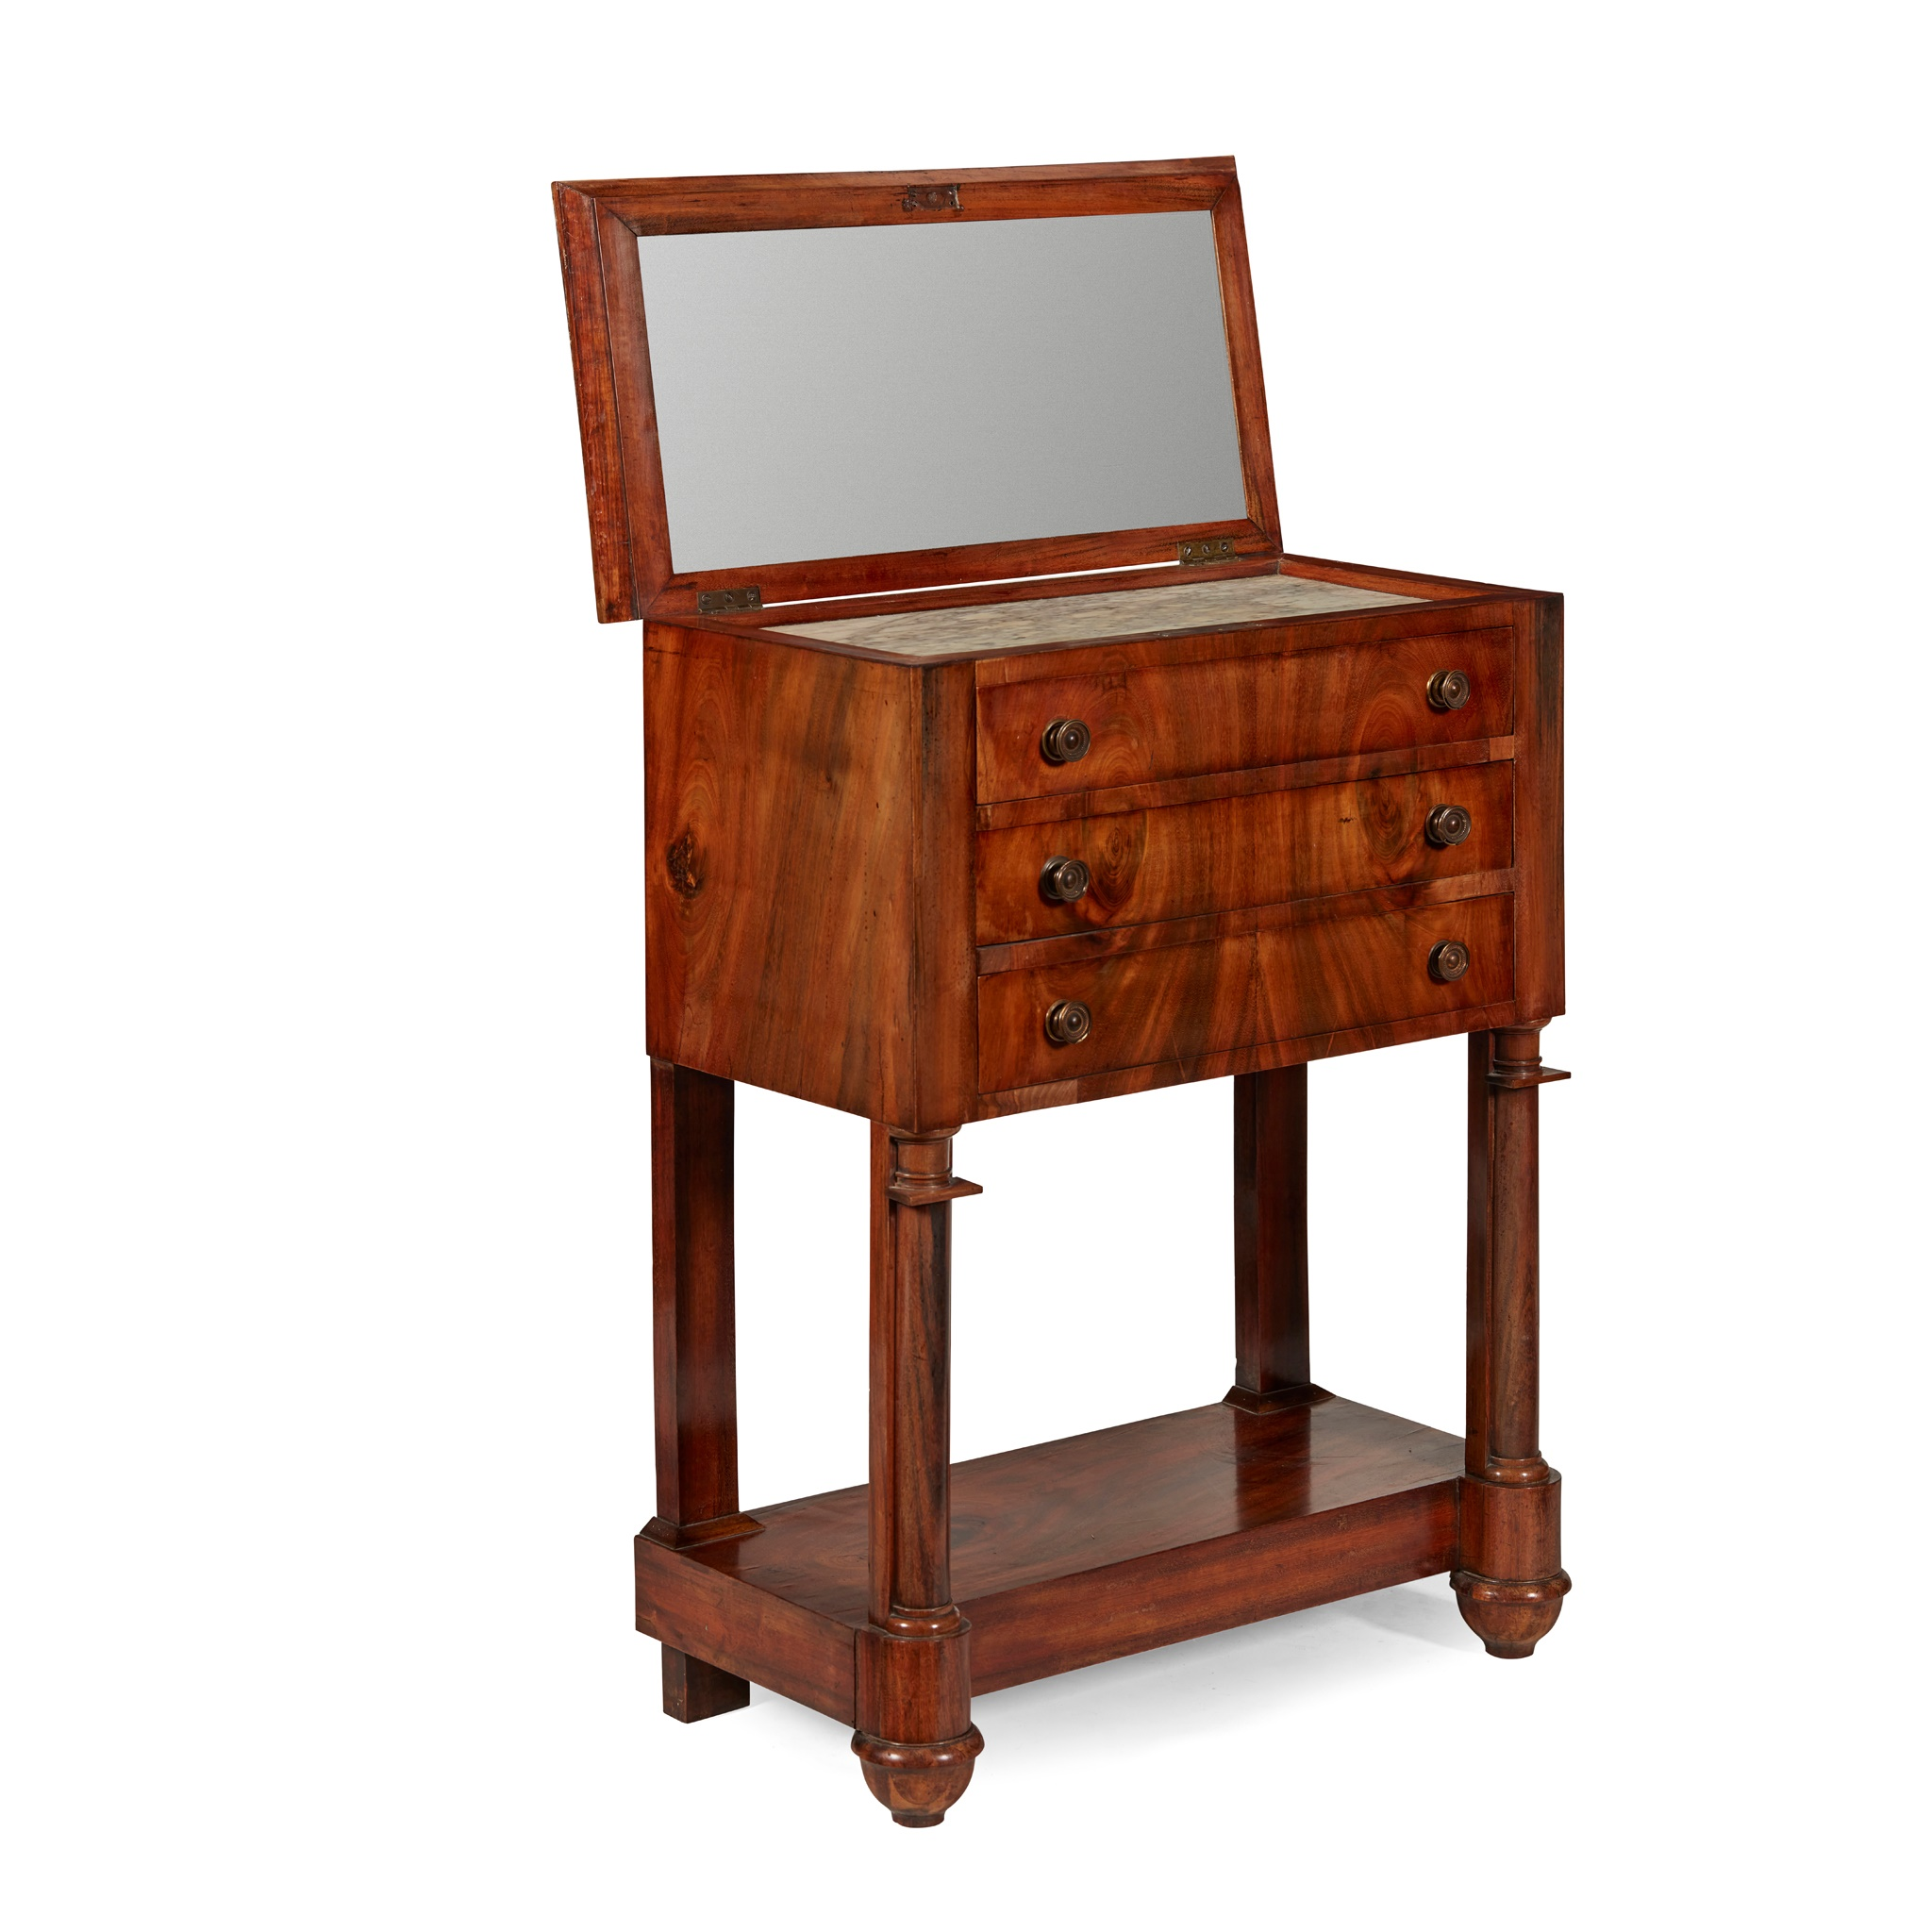 FRENCH EMPIRE MAHOGANY DRESSING TABLE EARLY 19TH CENTURY - Image 2 of 2